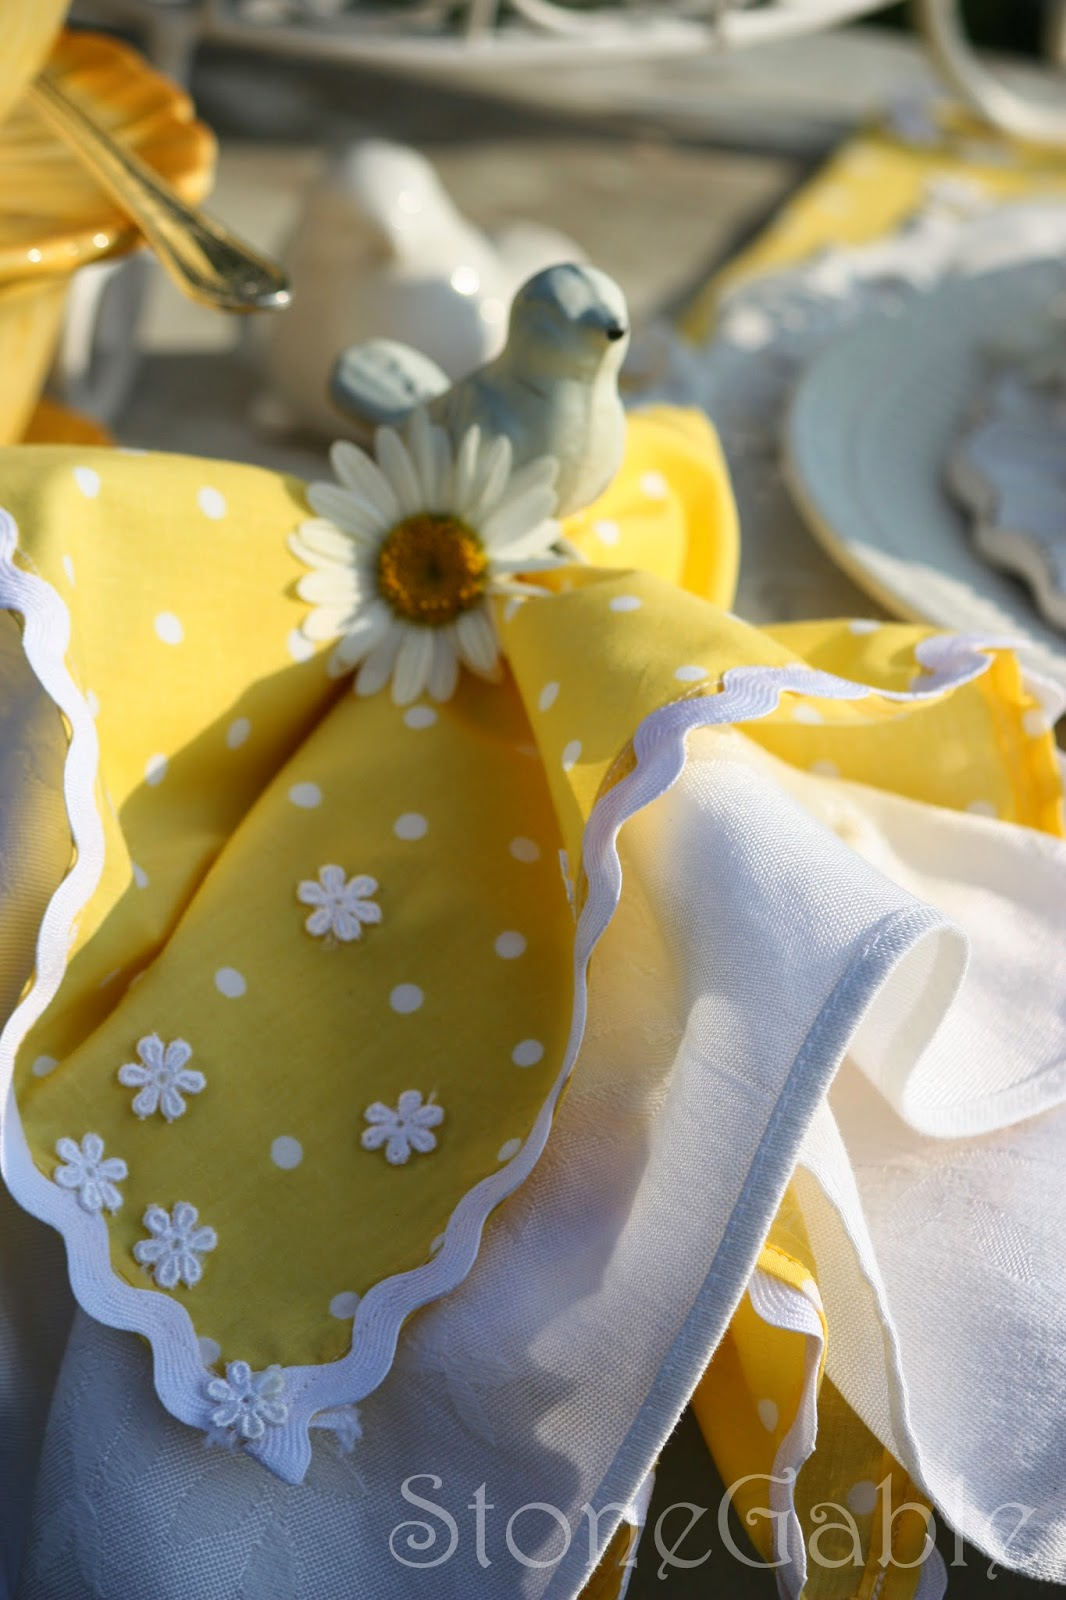 5 INTERESTING WAYS TO USE NAPKINS AND NAPKIN RINGSu2026 A TABLESCAPE SERIES,  PART III Amazing Pictures